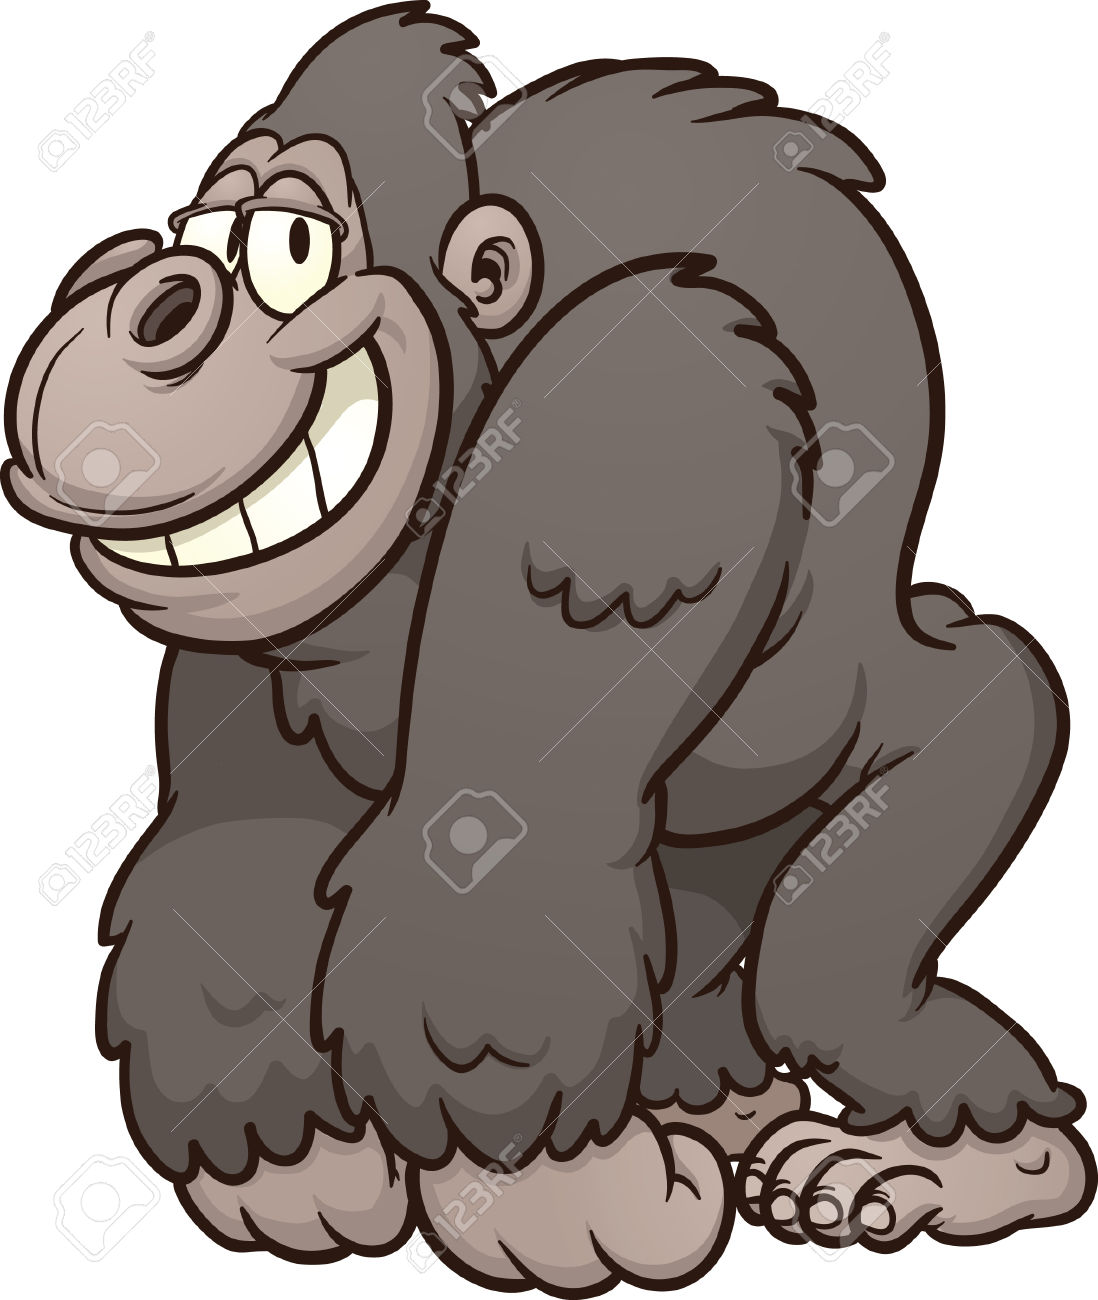 Gorilla clipart #6, Download drawings